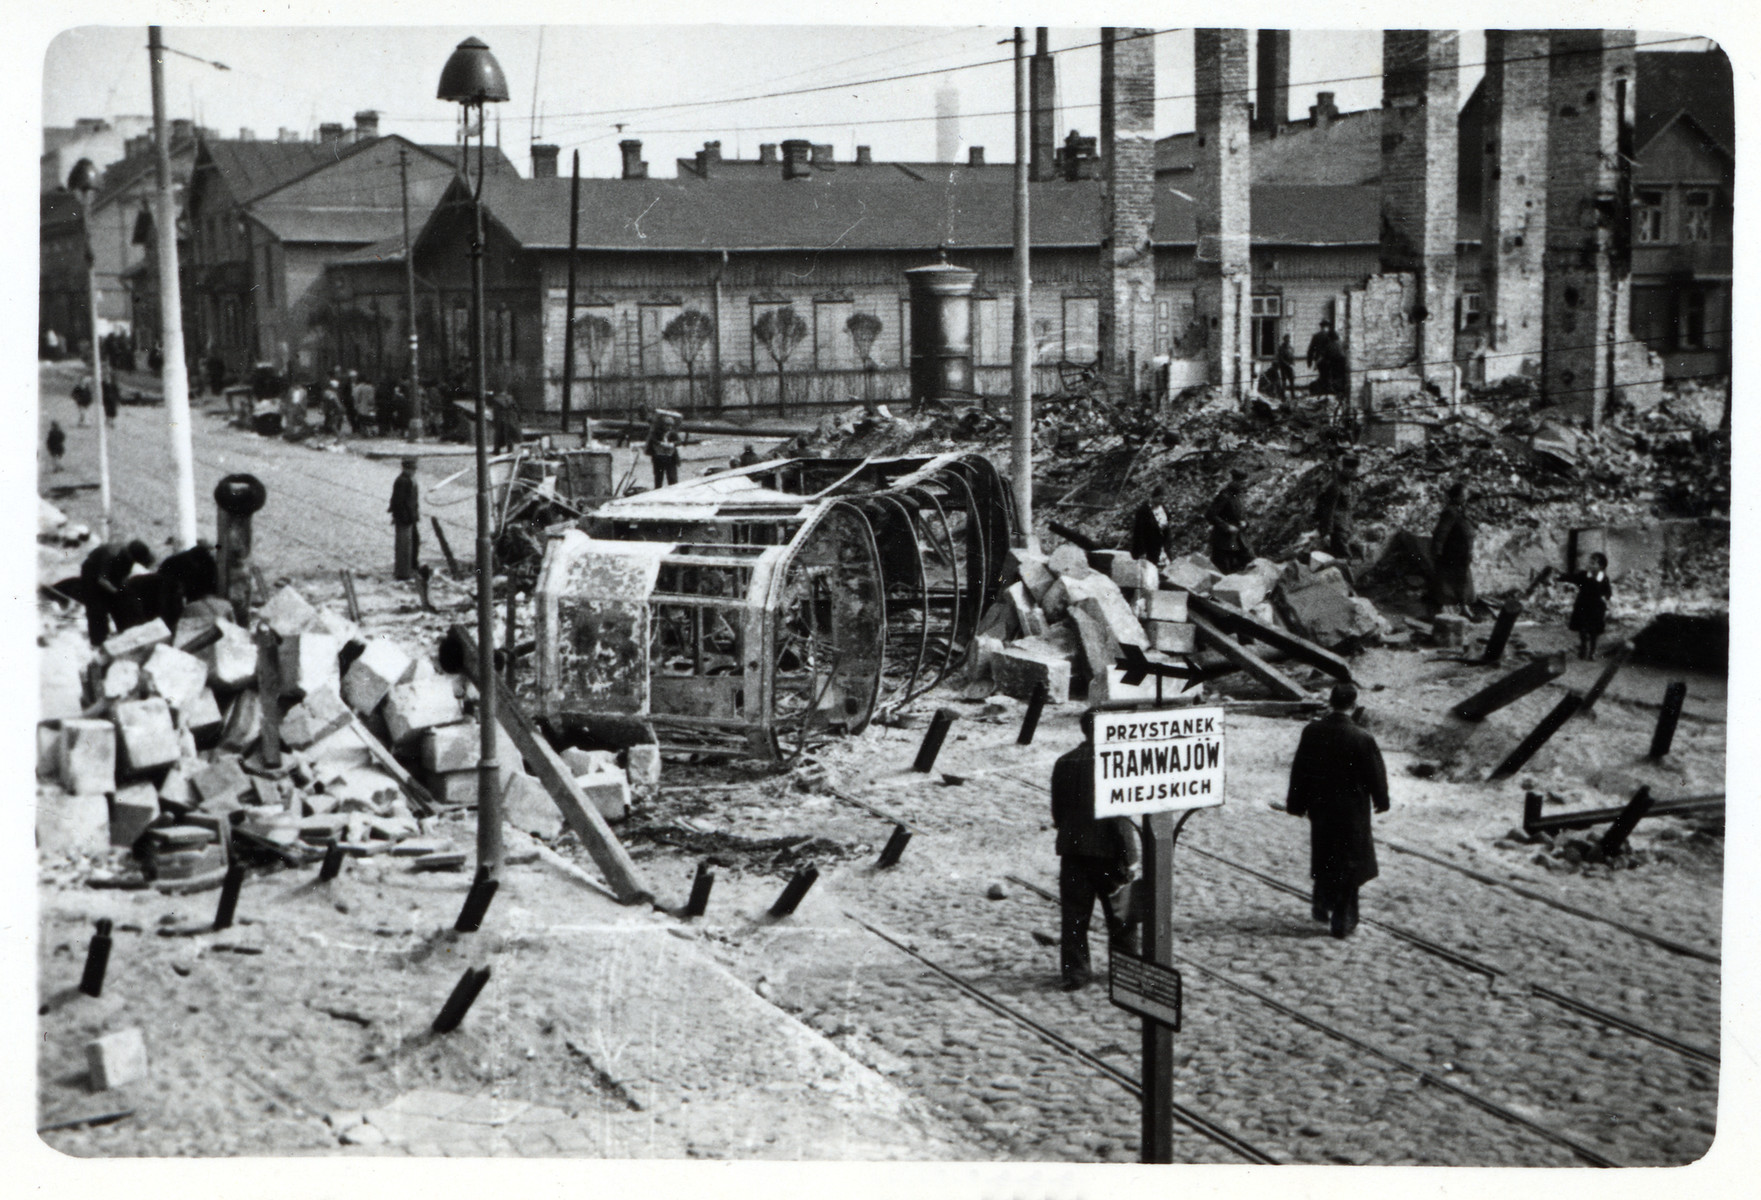 View of a destroyed streetcar on a bomb damaged street in besieged Warsaw.